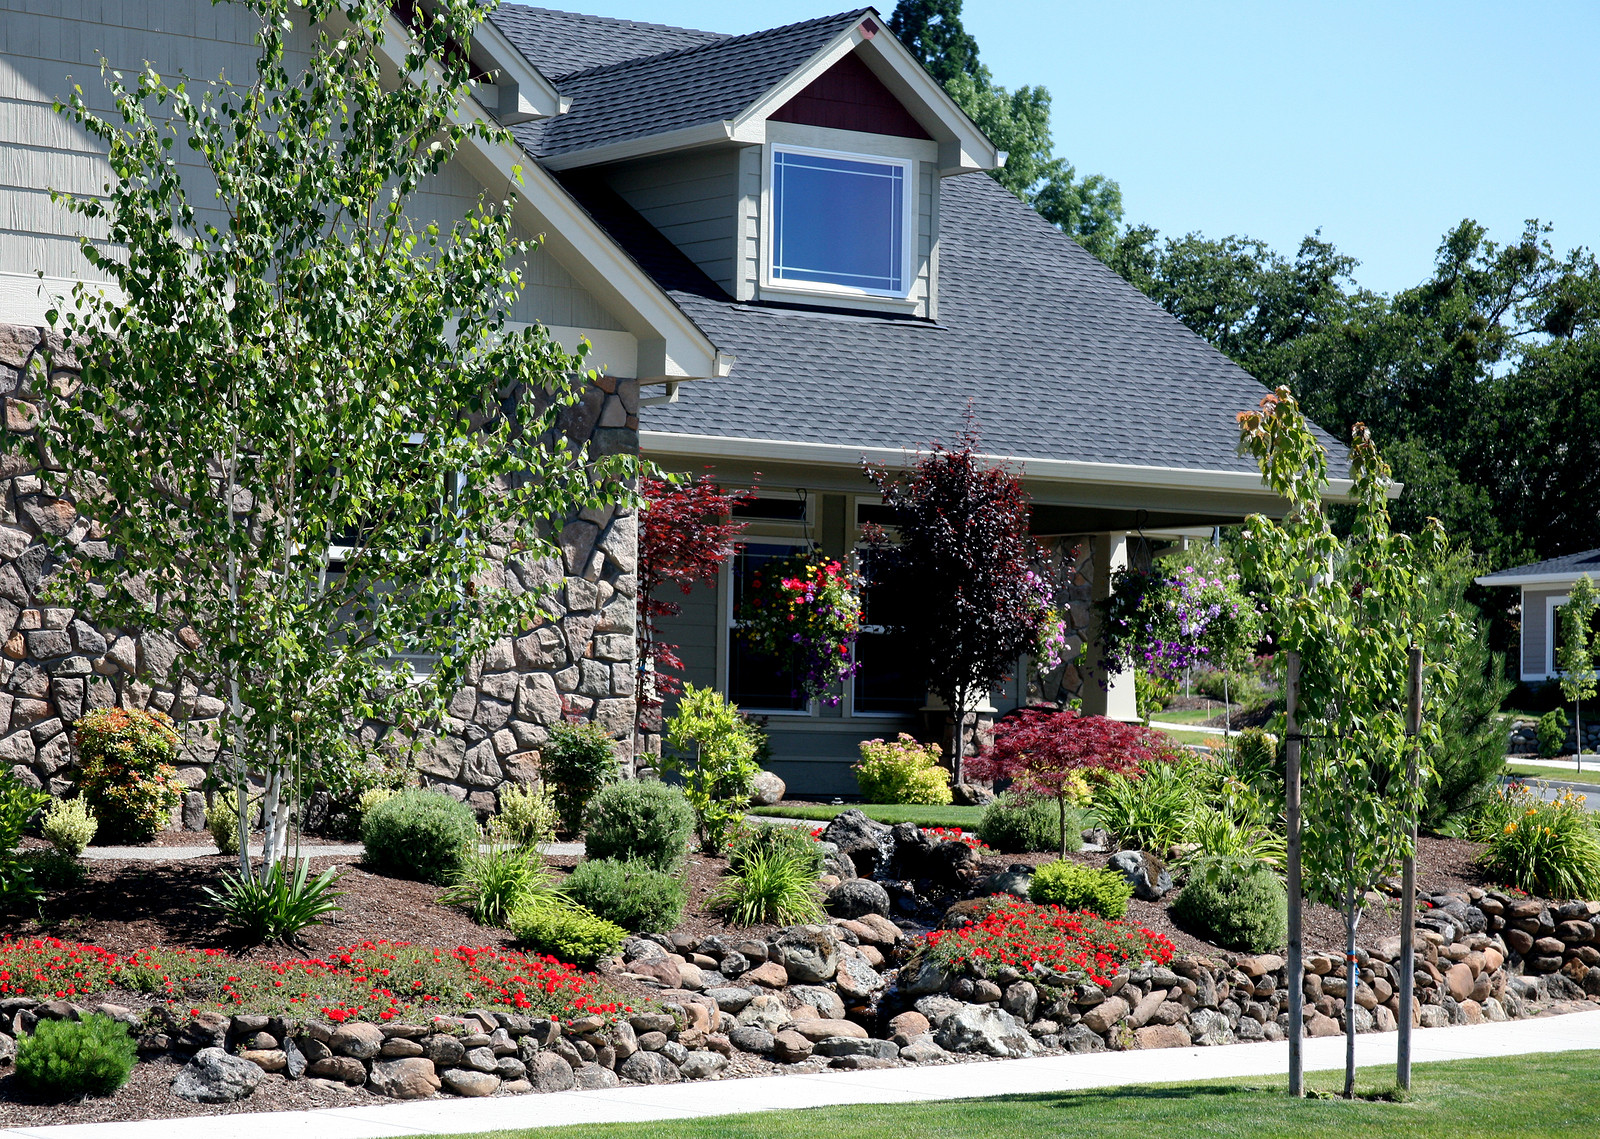 Residential Landscaping (View 6 of 8)